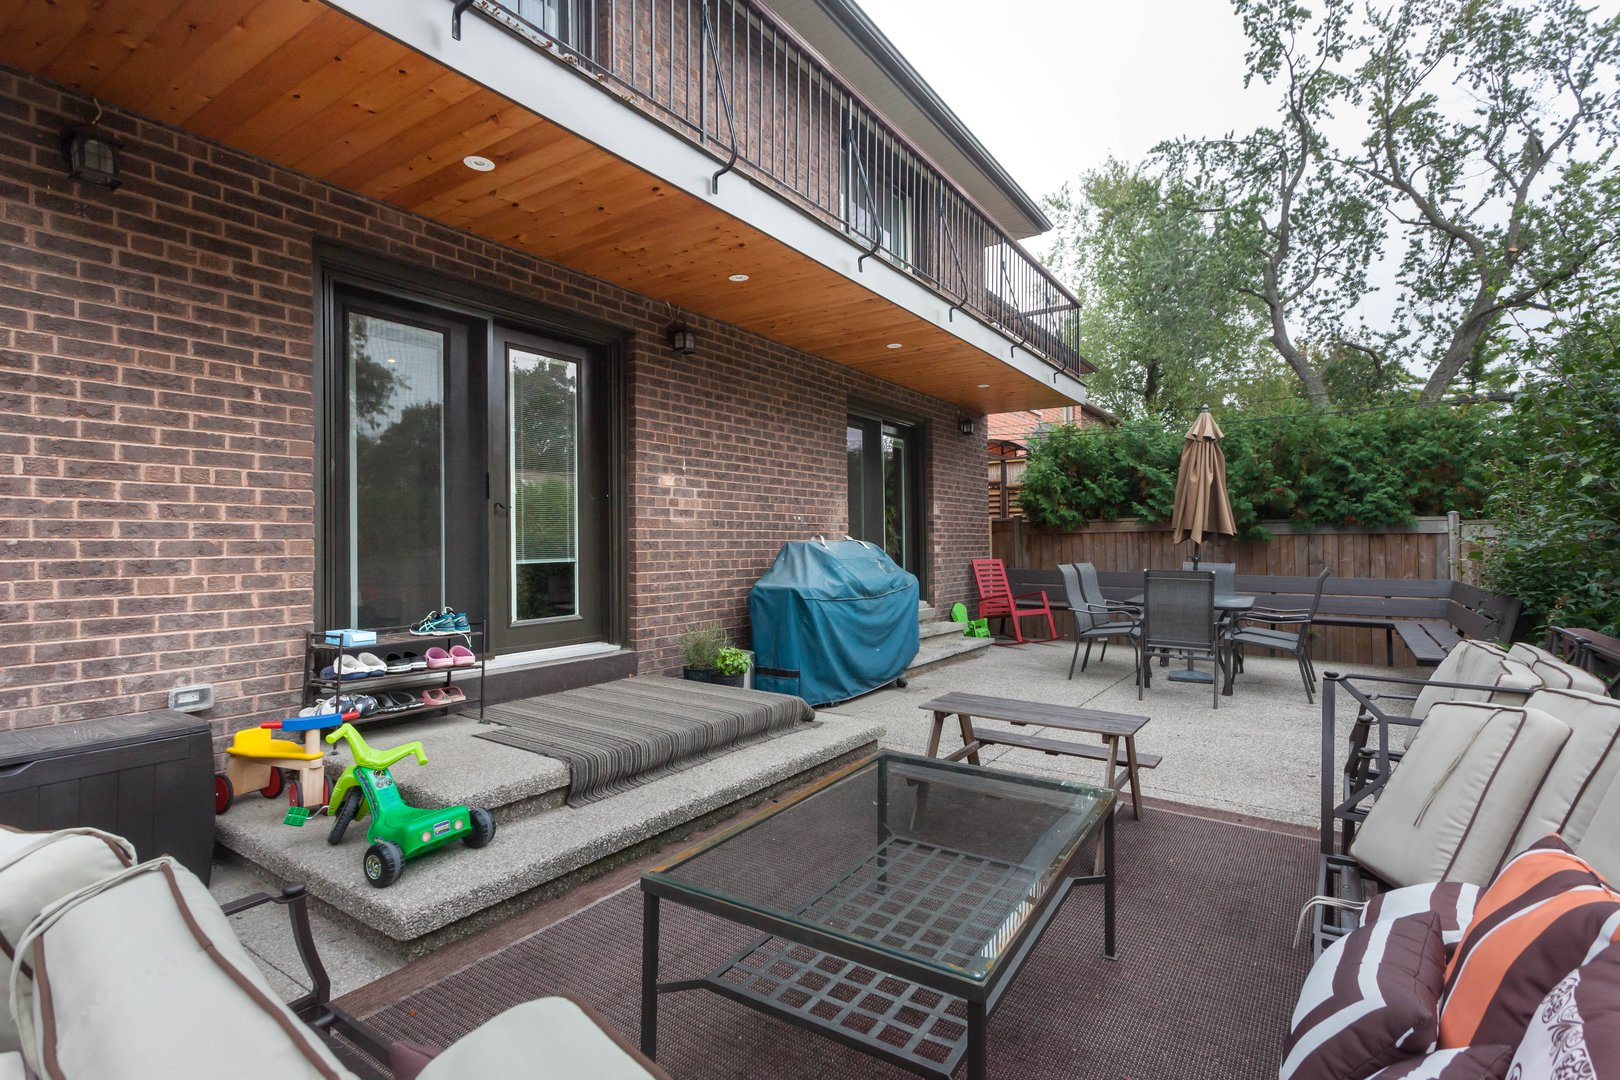 House for rent at 84 Laurel Avenue, Etobicoke, ON. This is the patio terrace with outdoor living space and french doors.